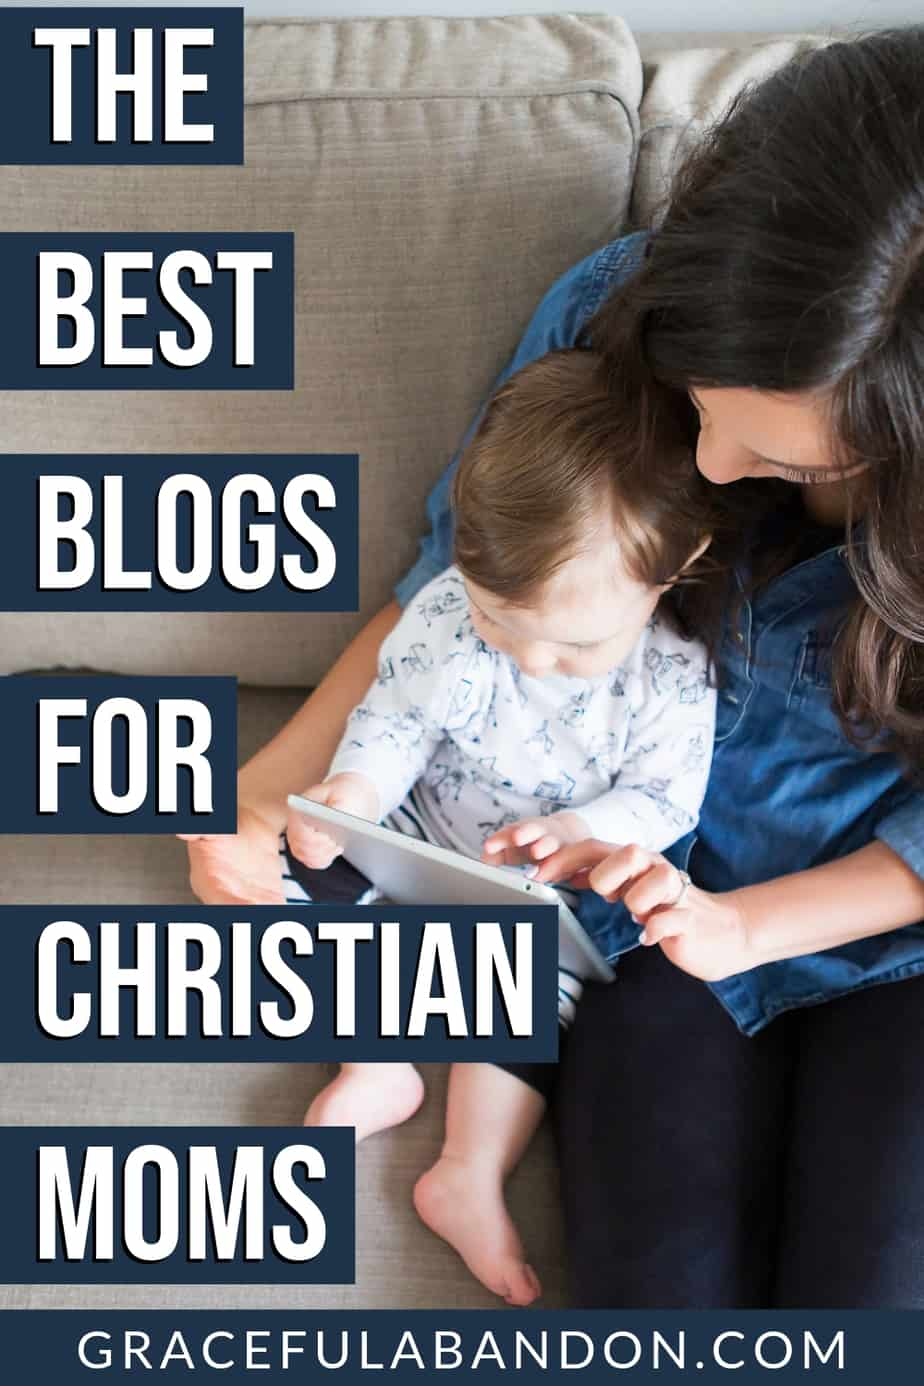 Check out these awesome blogs for Christian moms